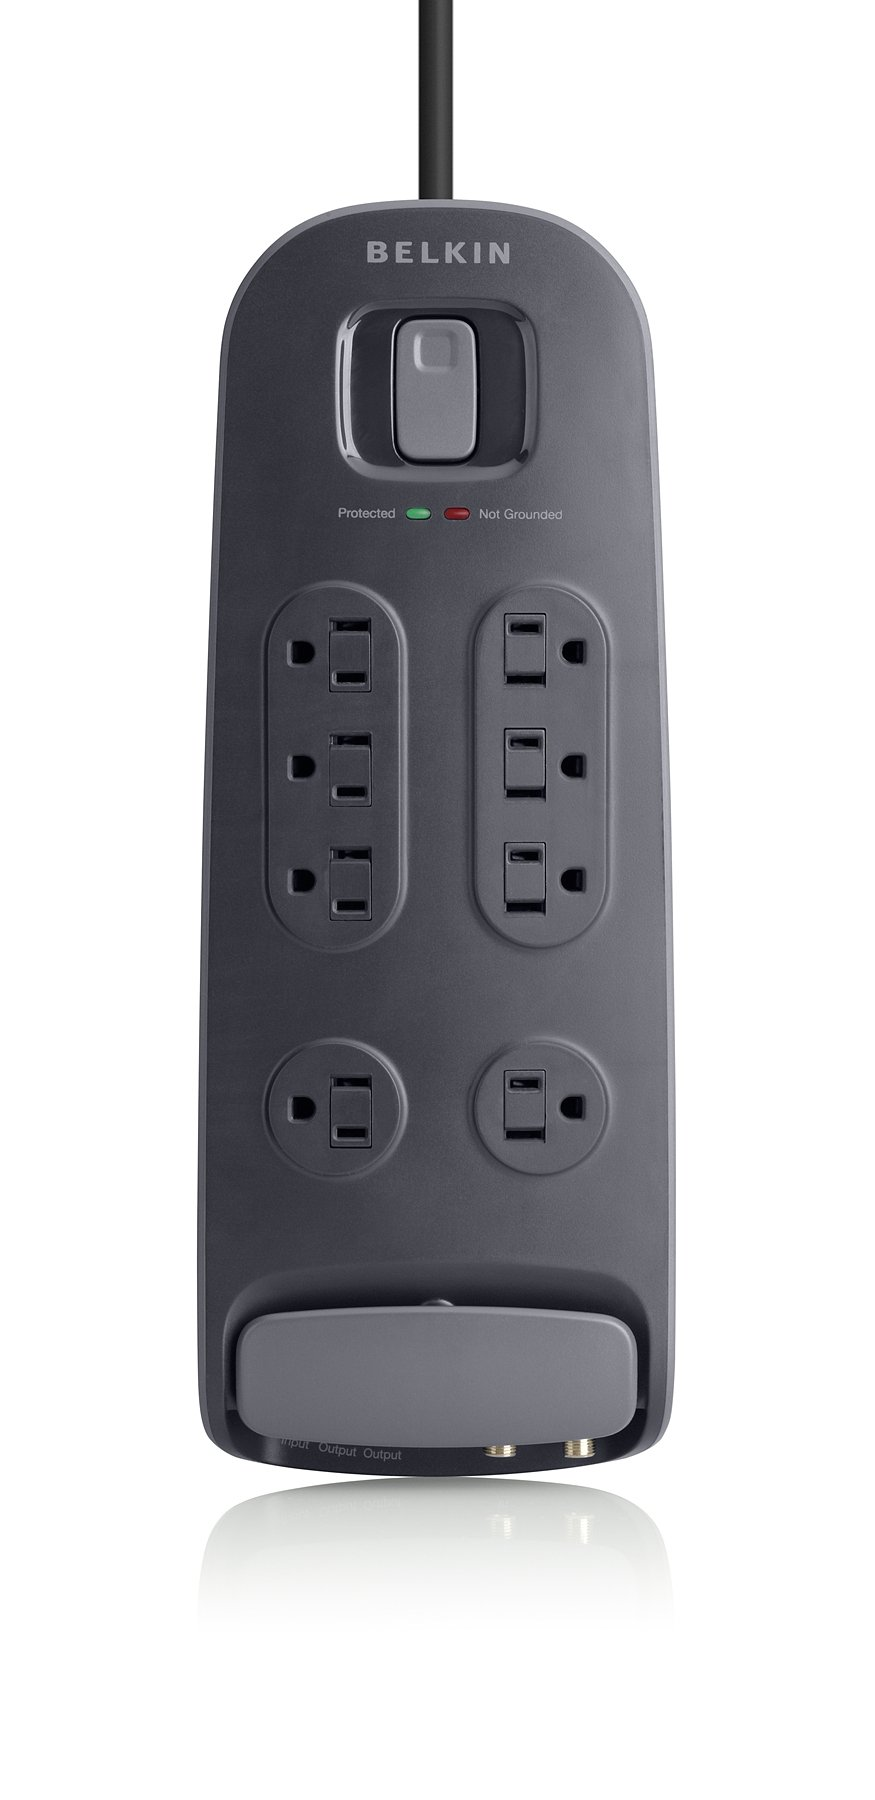 Belkin 8-Outlet AV Power Strip Surge Protector with 6-Foot Power Cord and Coaxial and Telephone Protection, 3690 Joules, Black (BV108230-06-BLK)